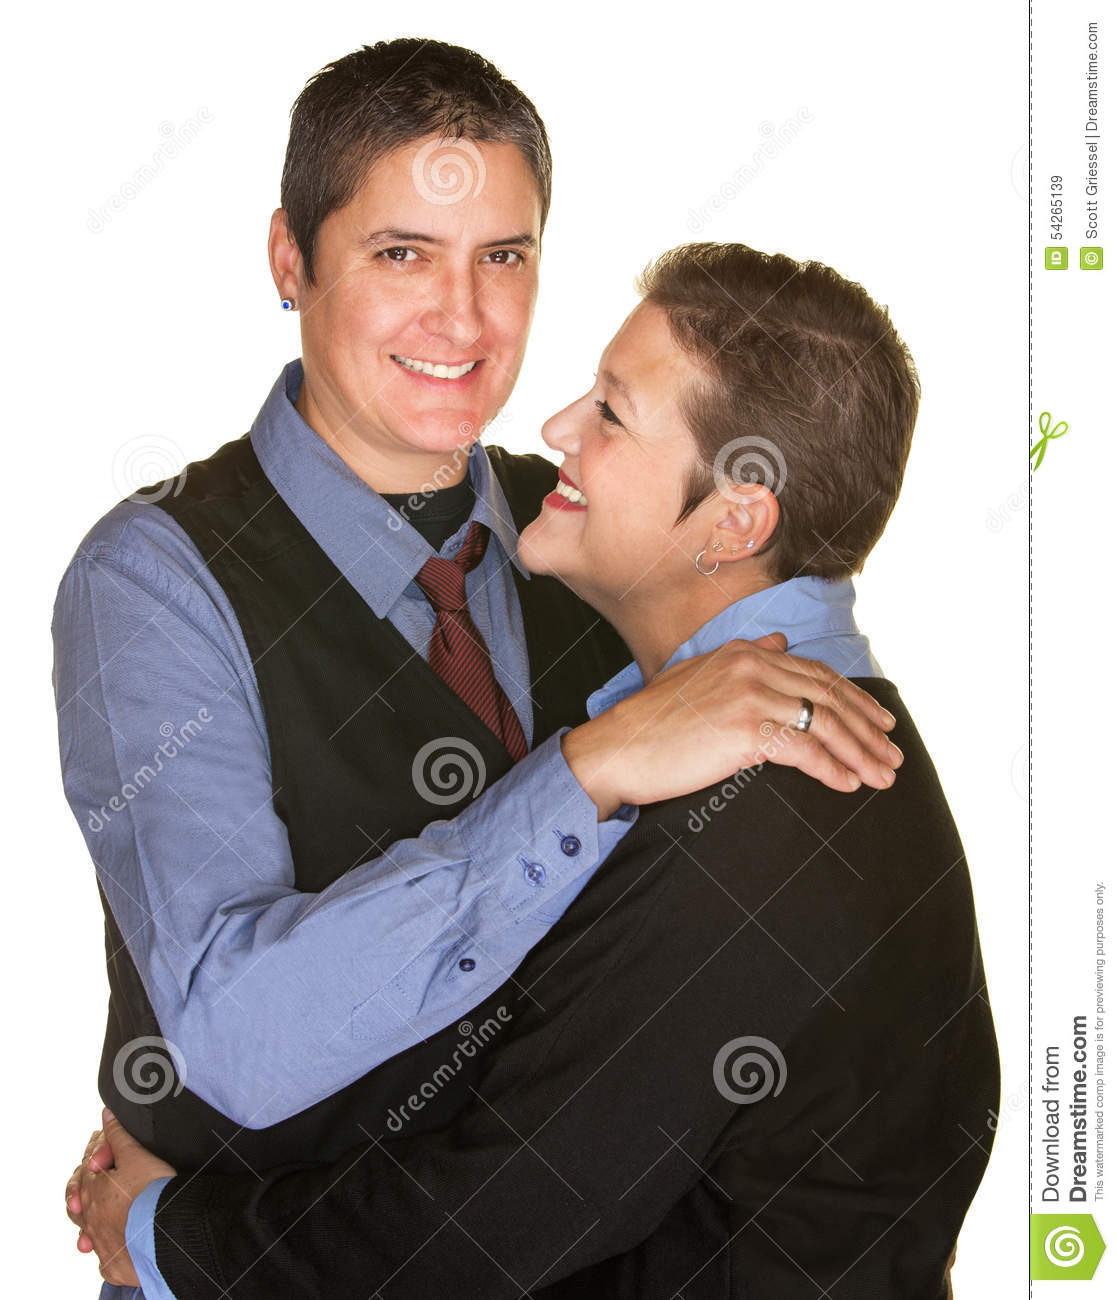 Tall and Short Couple Hugging. Tall And Short Couple Hugging Stock Photo   Image  54265139